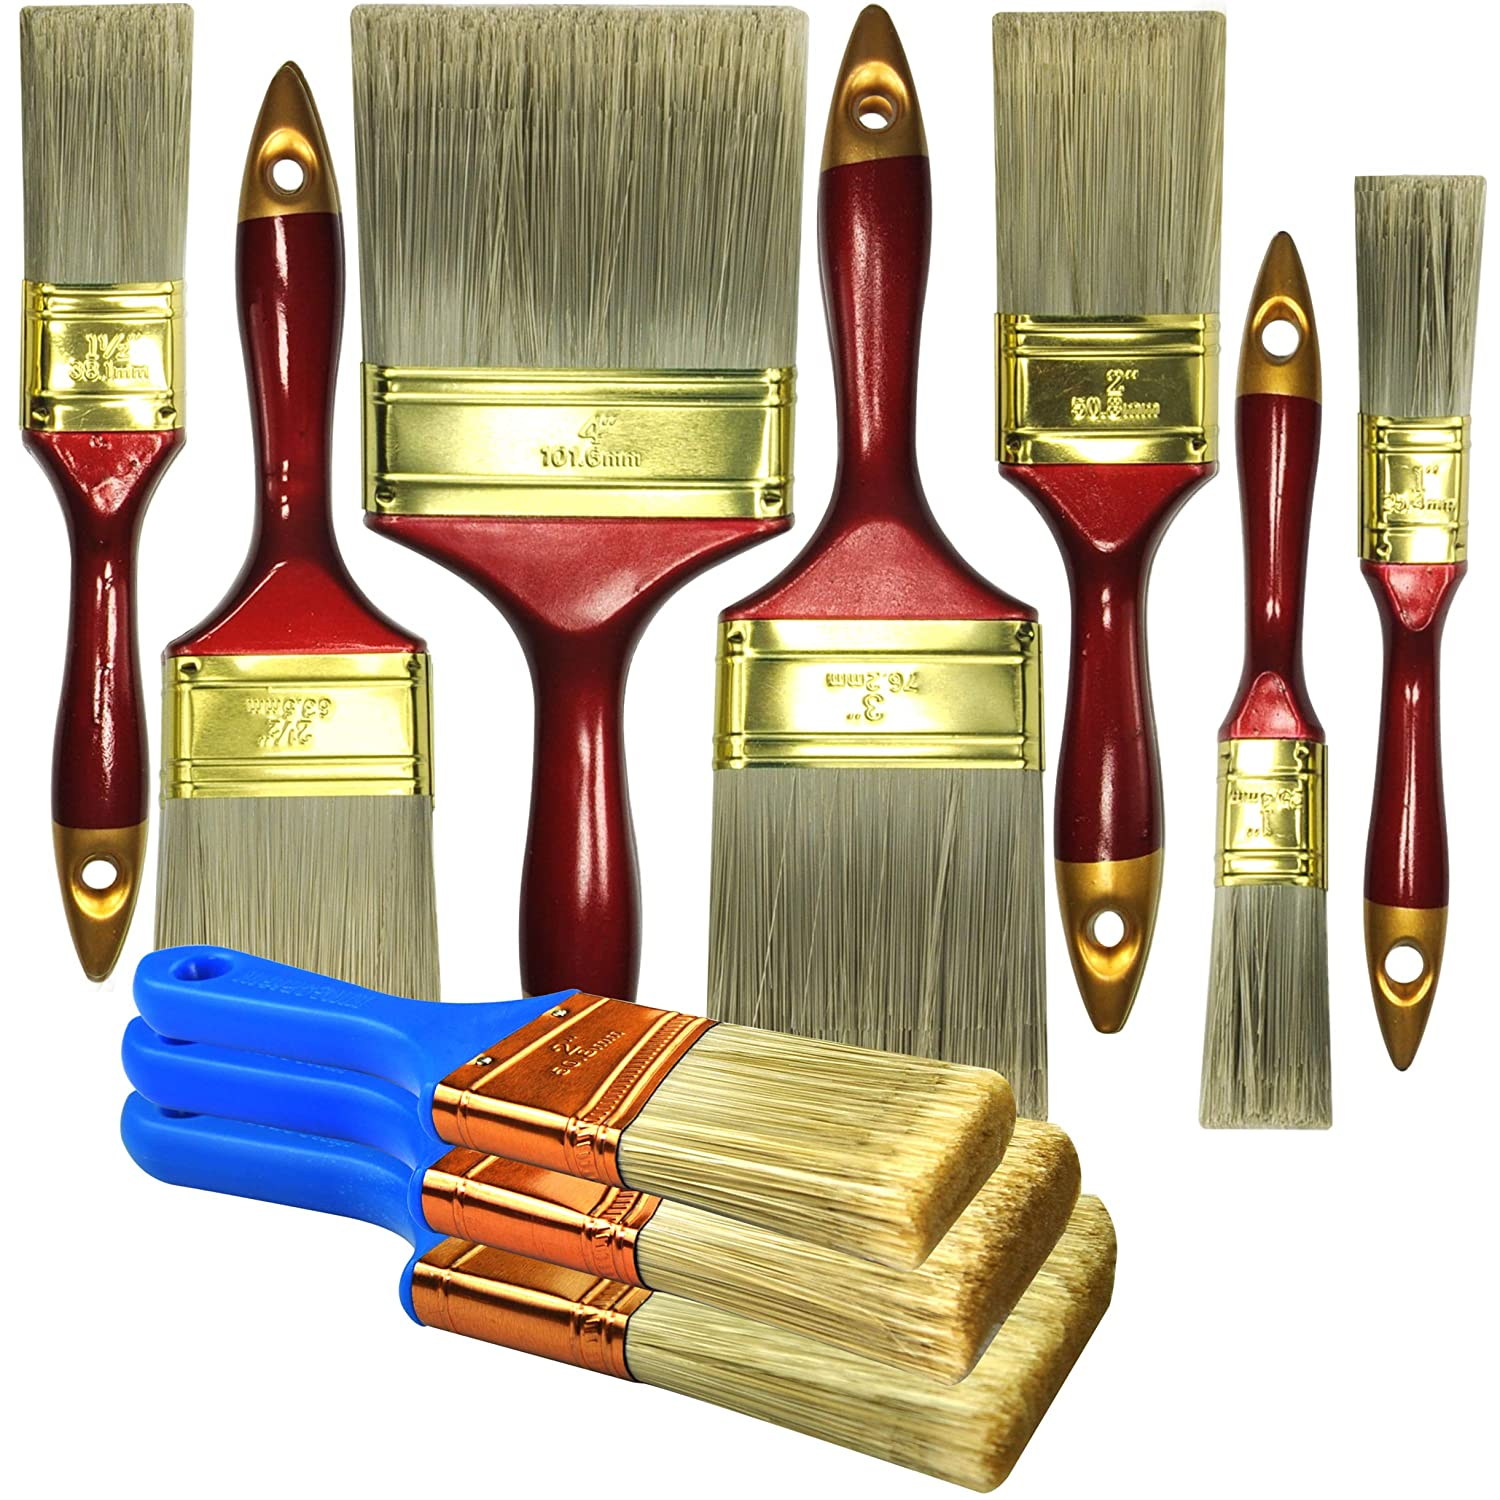 10 Piece Professional Painters Heavy Duty Paint Brush,Paint Brushes,Paint Brushes Set,Paint Brushes,Painters Tools,Painters Brush,Painters Paint Brush Andrew